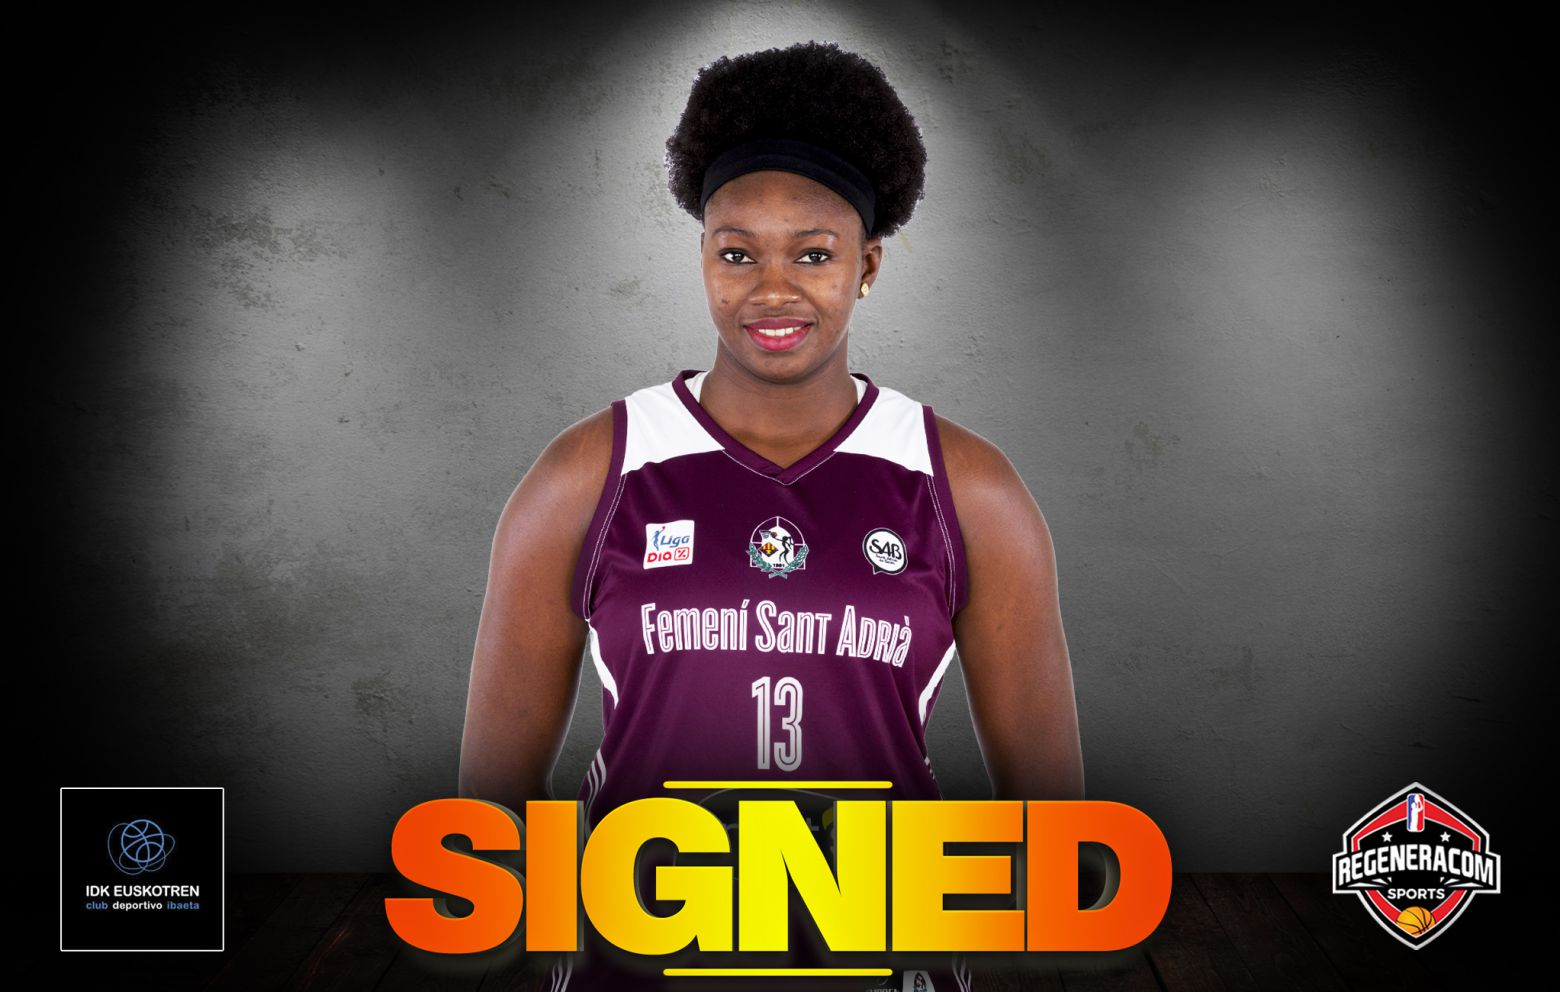 MARIAM COULIBALY has extended with IDK Euskotren for the 2021/22 season